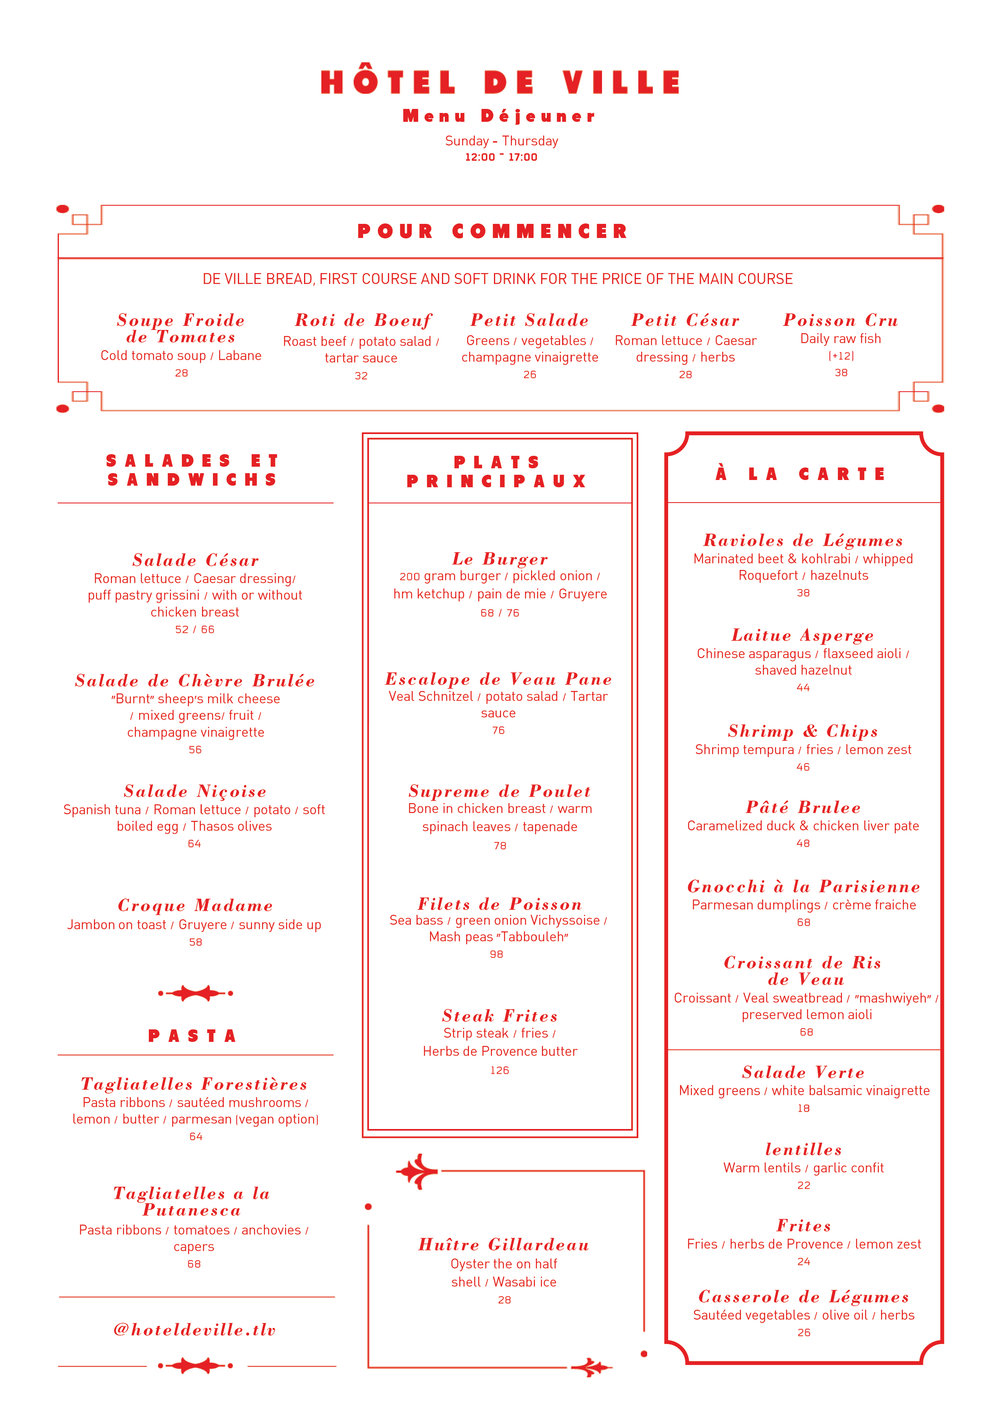 HOTEL_DE_VILLE_LUNCH_MENU_ENG-1.jpg